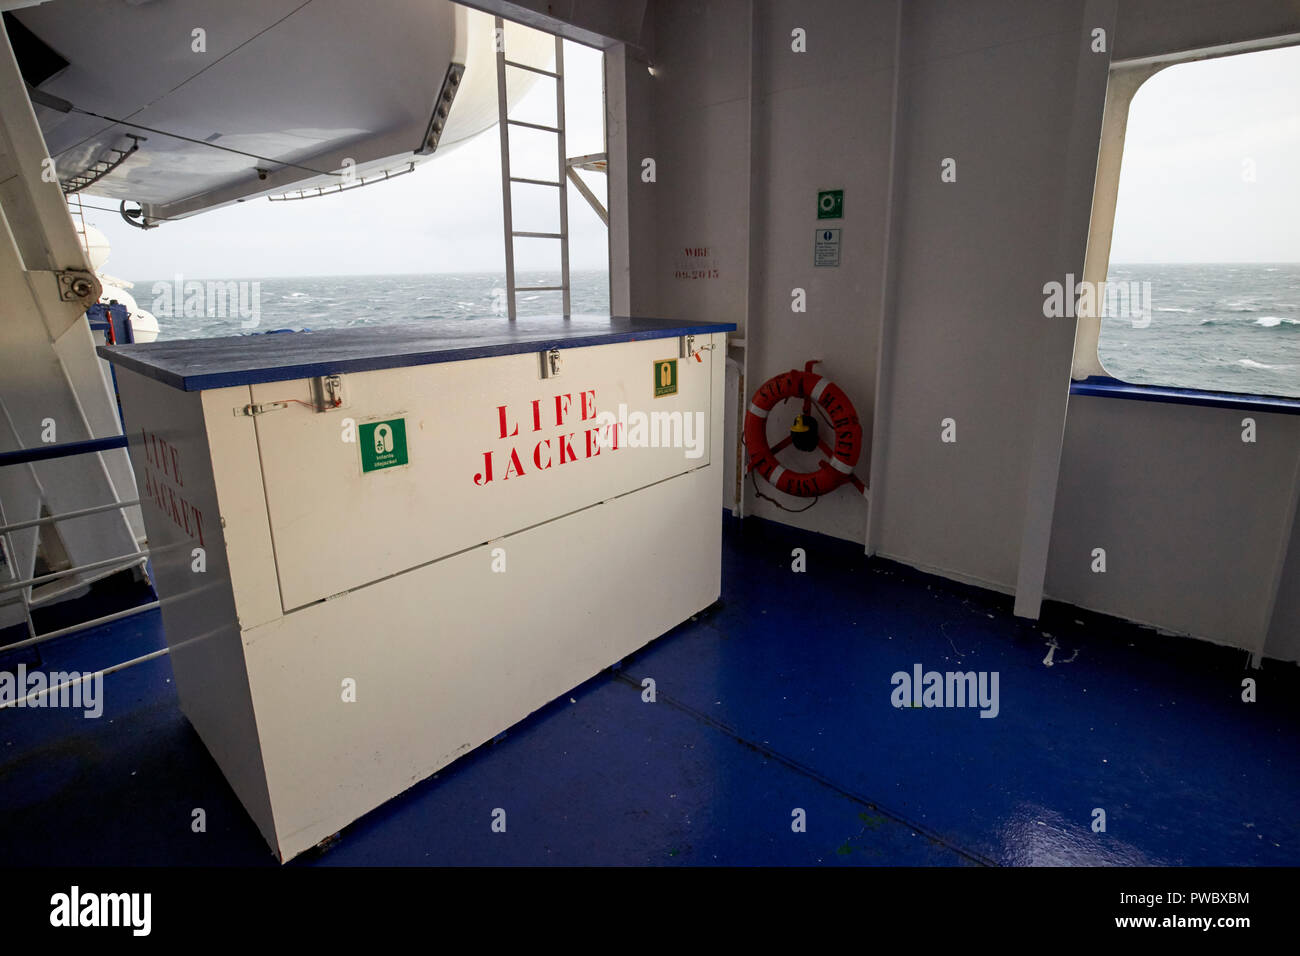 life jacket at muster station of stena line ferry making rough irish sea crossing during storm - Stock Image